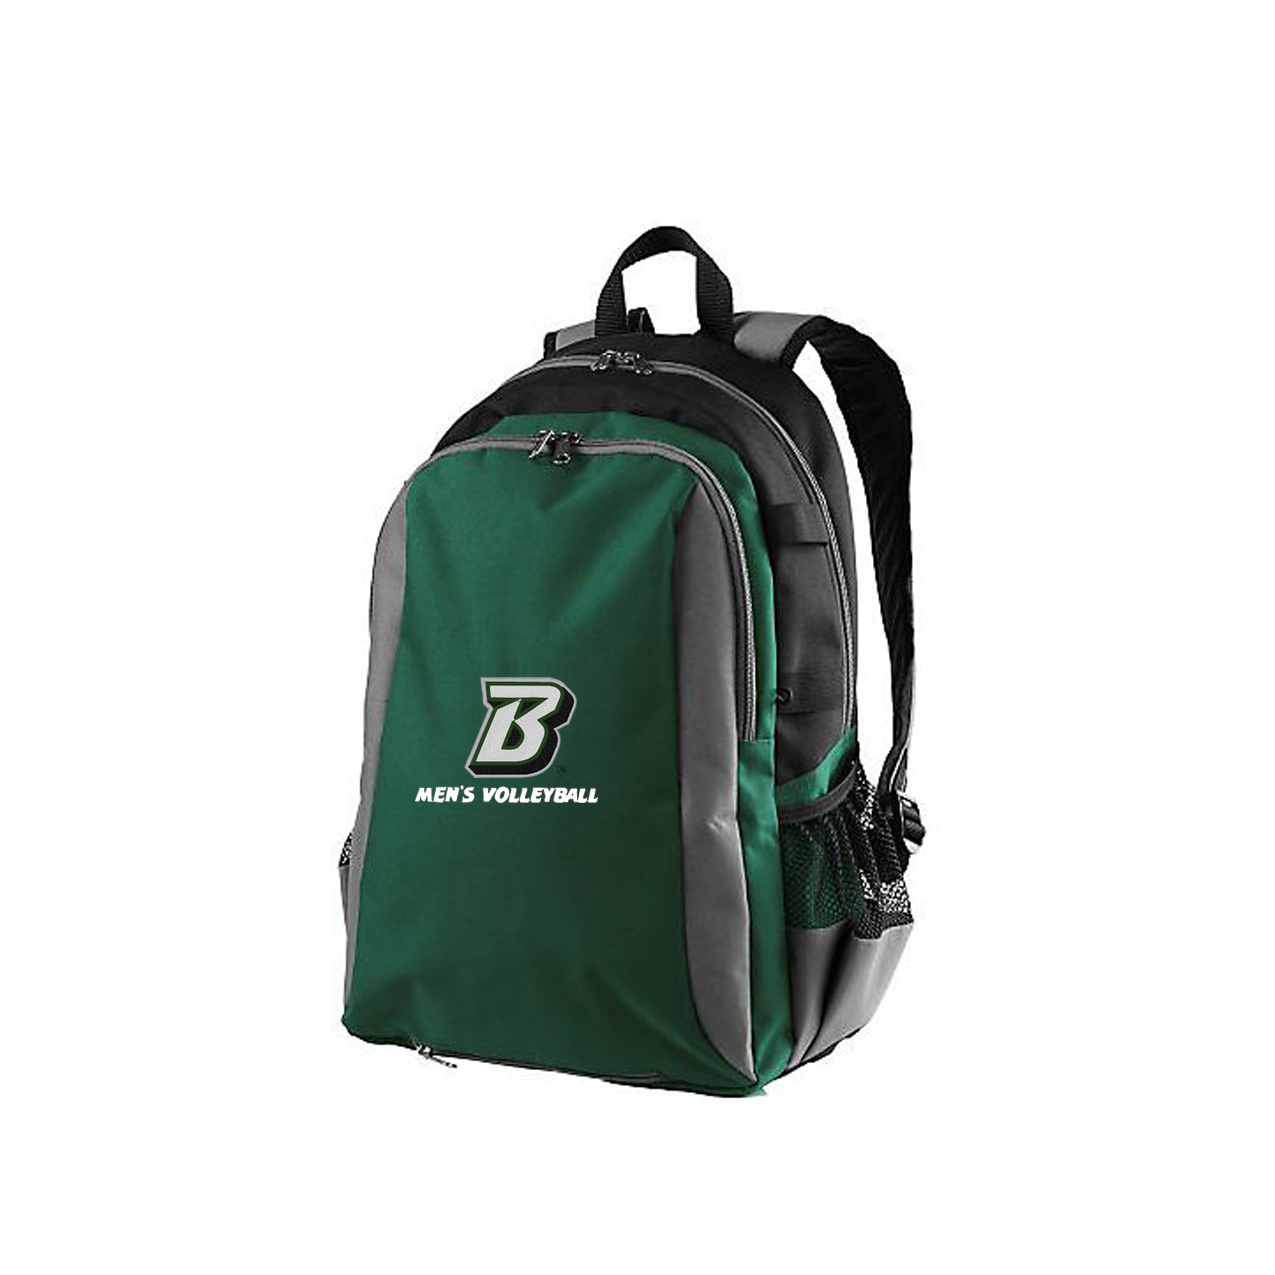 BU Men s Club Volleyball Backpack — Embroidery   Screen Printing Network 4d553b91caa02